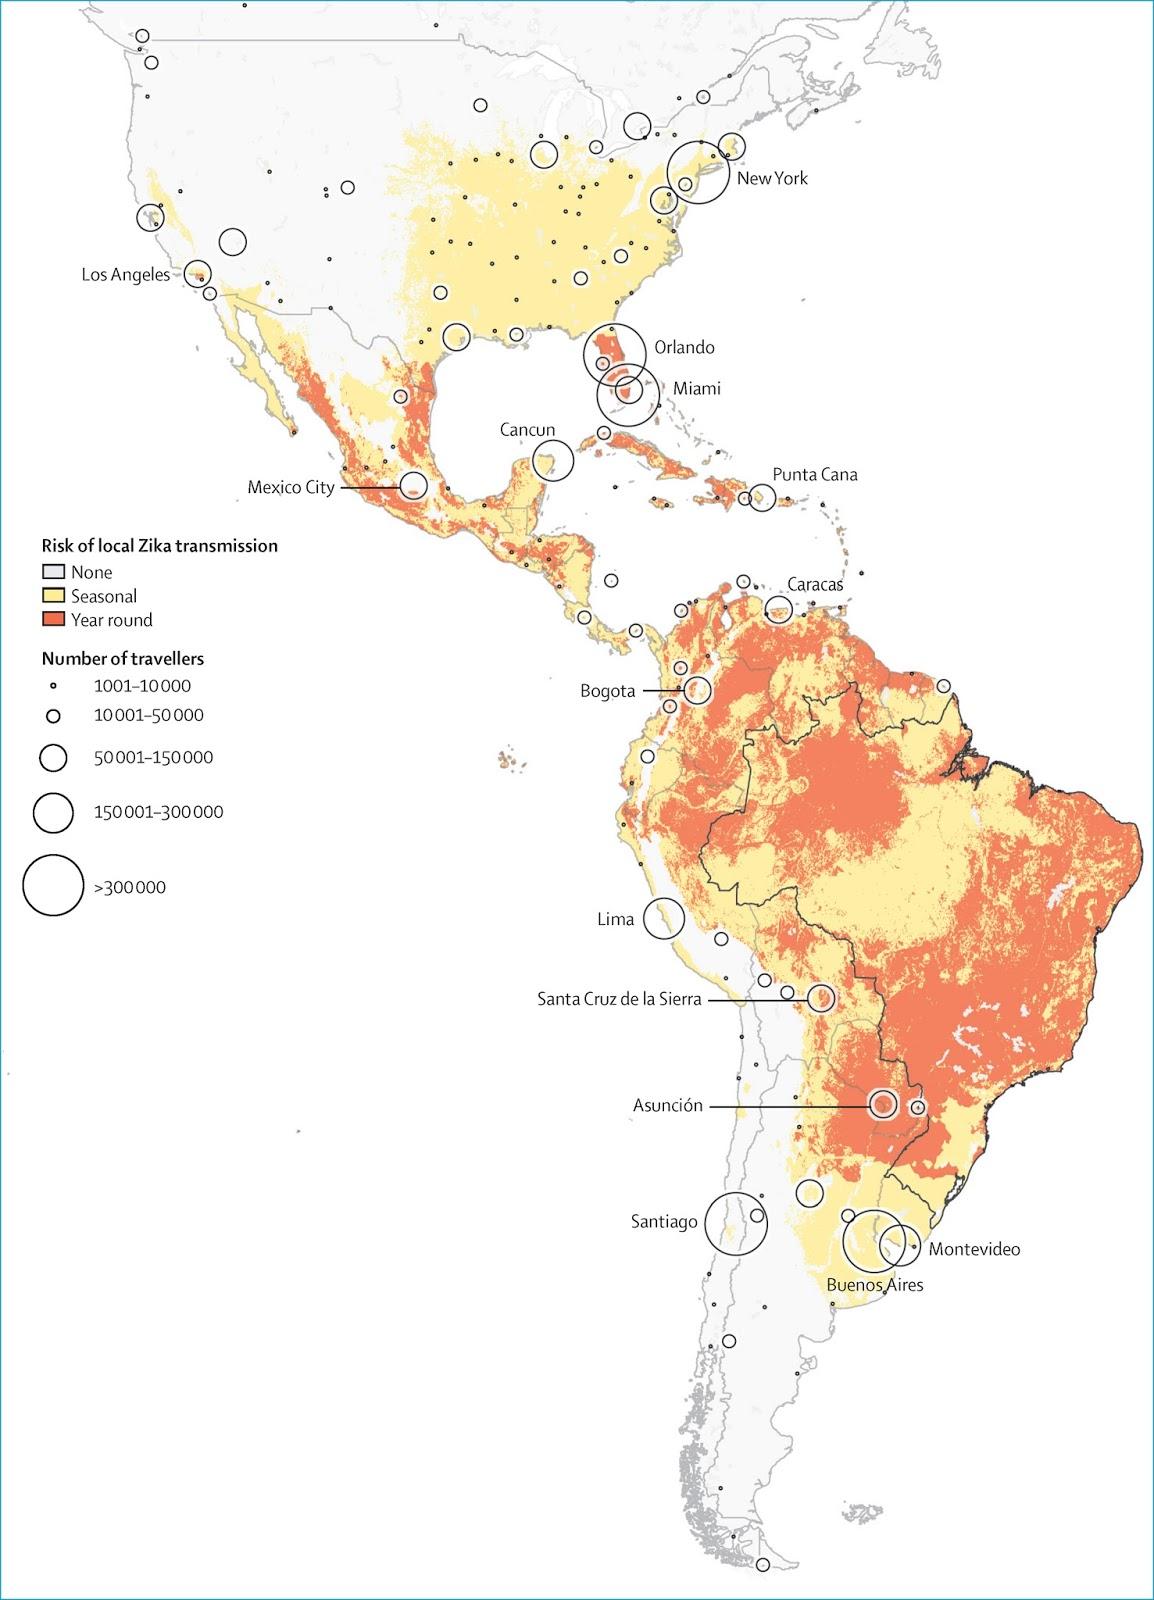 Risk of local Zika transmission